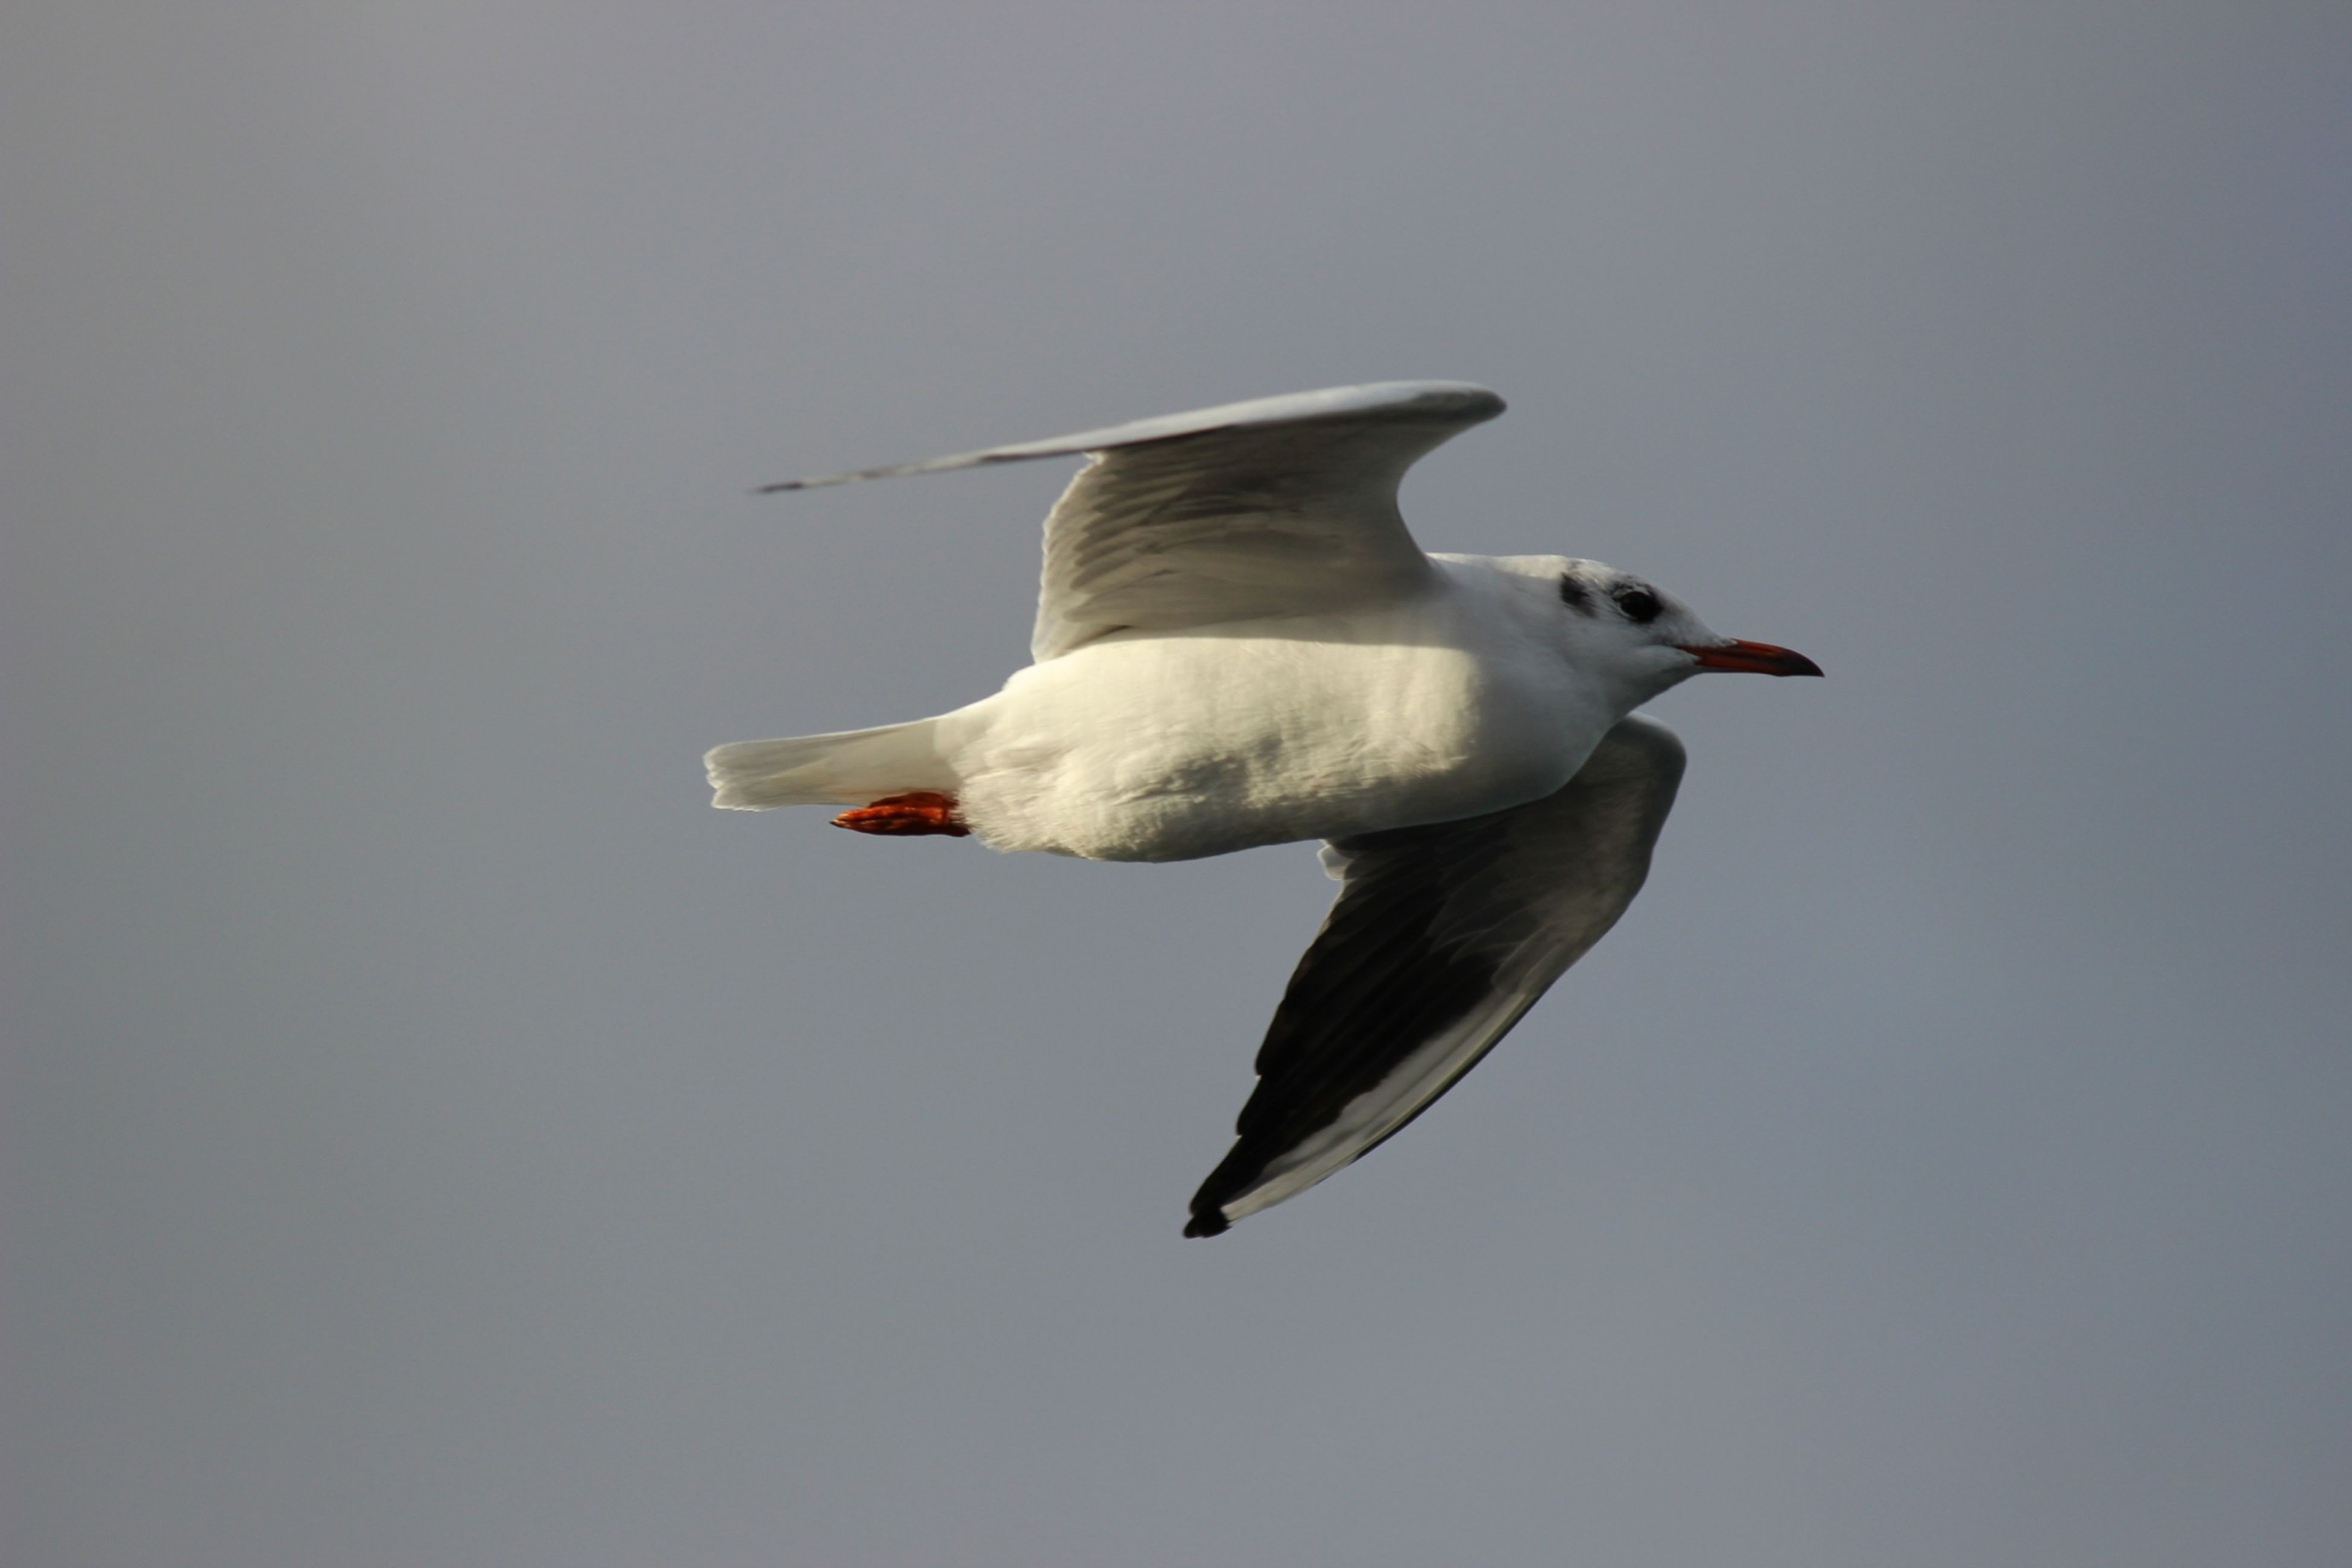 animal themes, bird, one animal, flying, seagull, spread wings, animals in the wild, wildlife, low angle view, full length, mid-air, clear sky, copy space, nature, zoology, sky, no people, day, outdoors, vertebrate